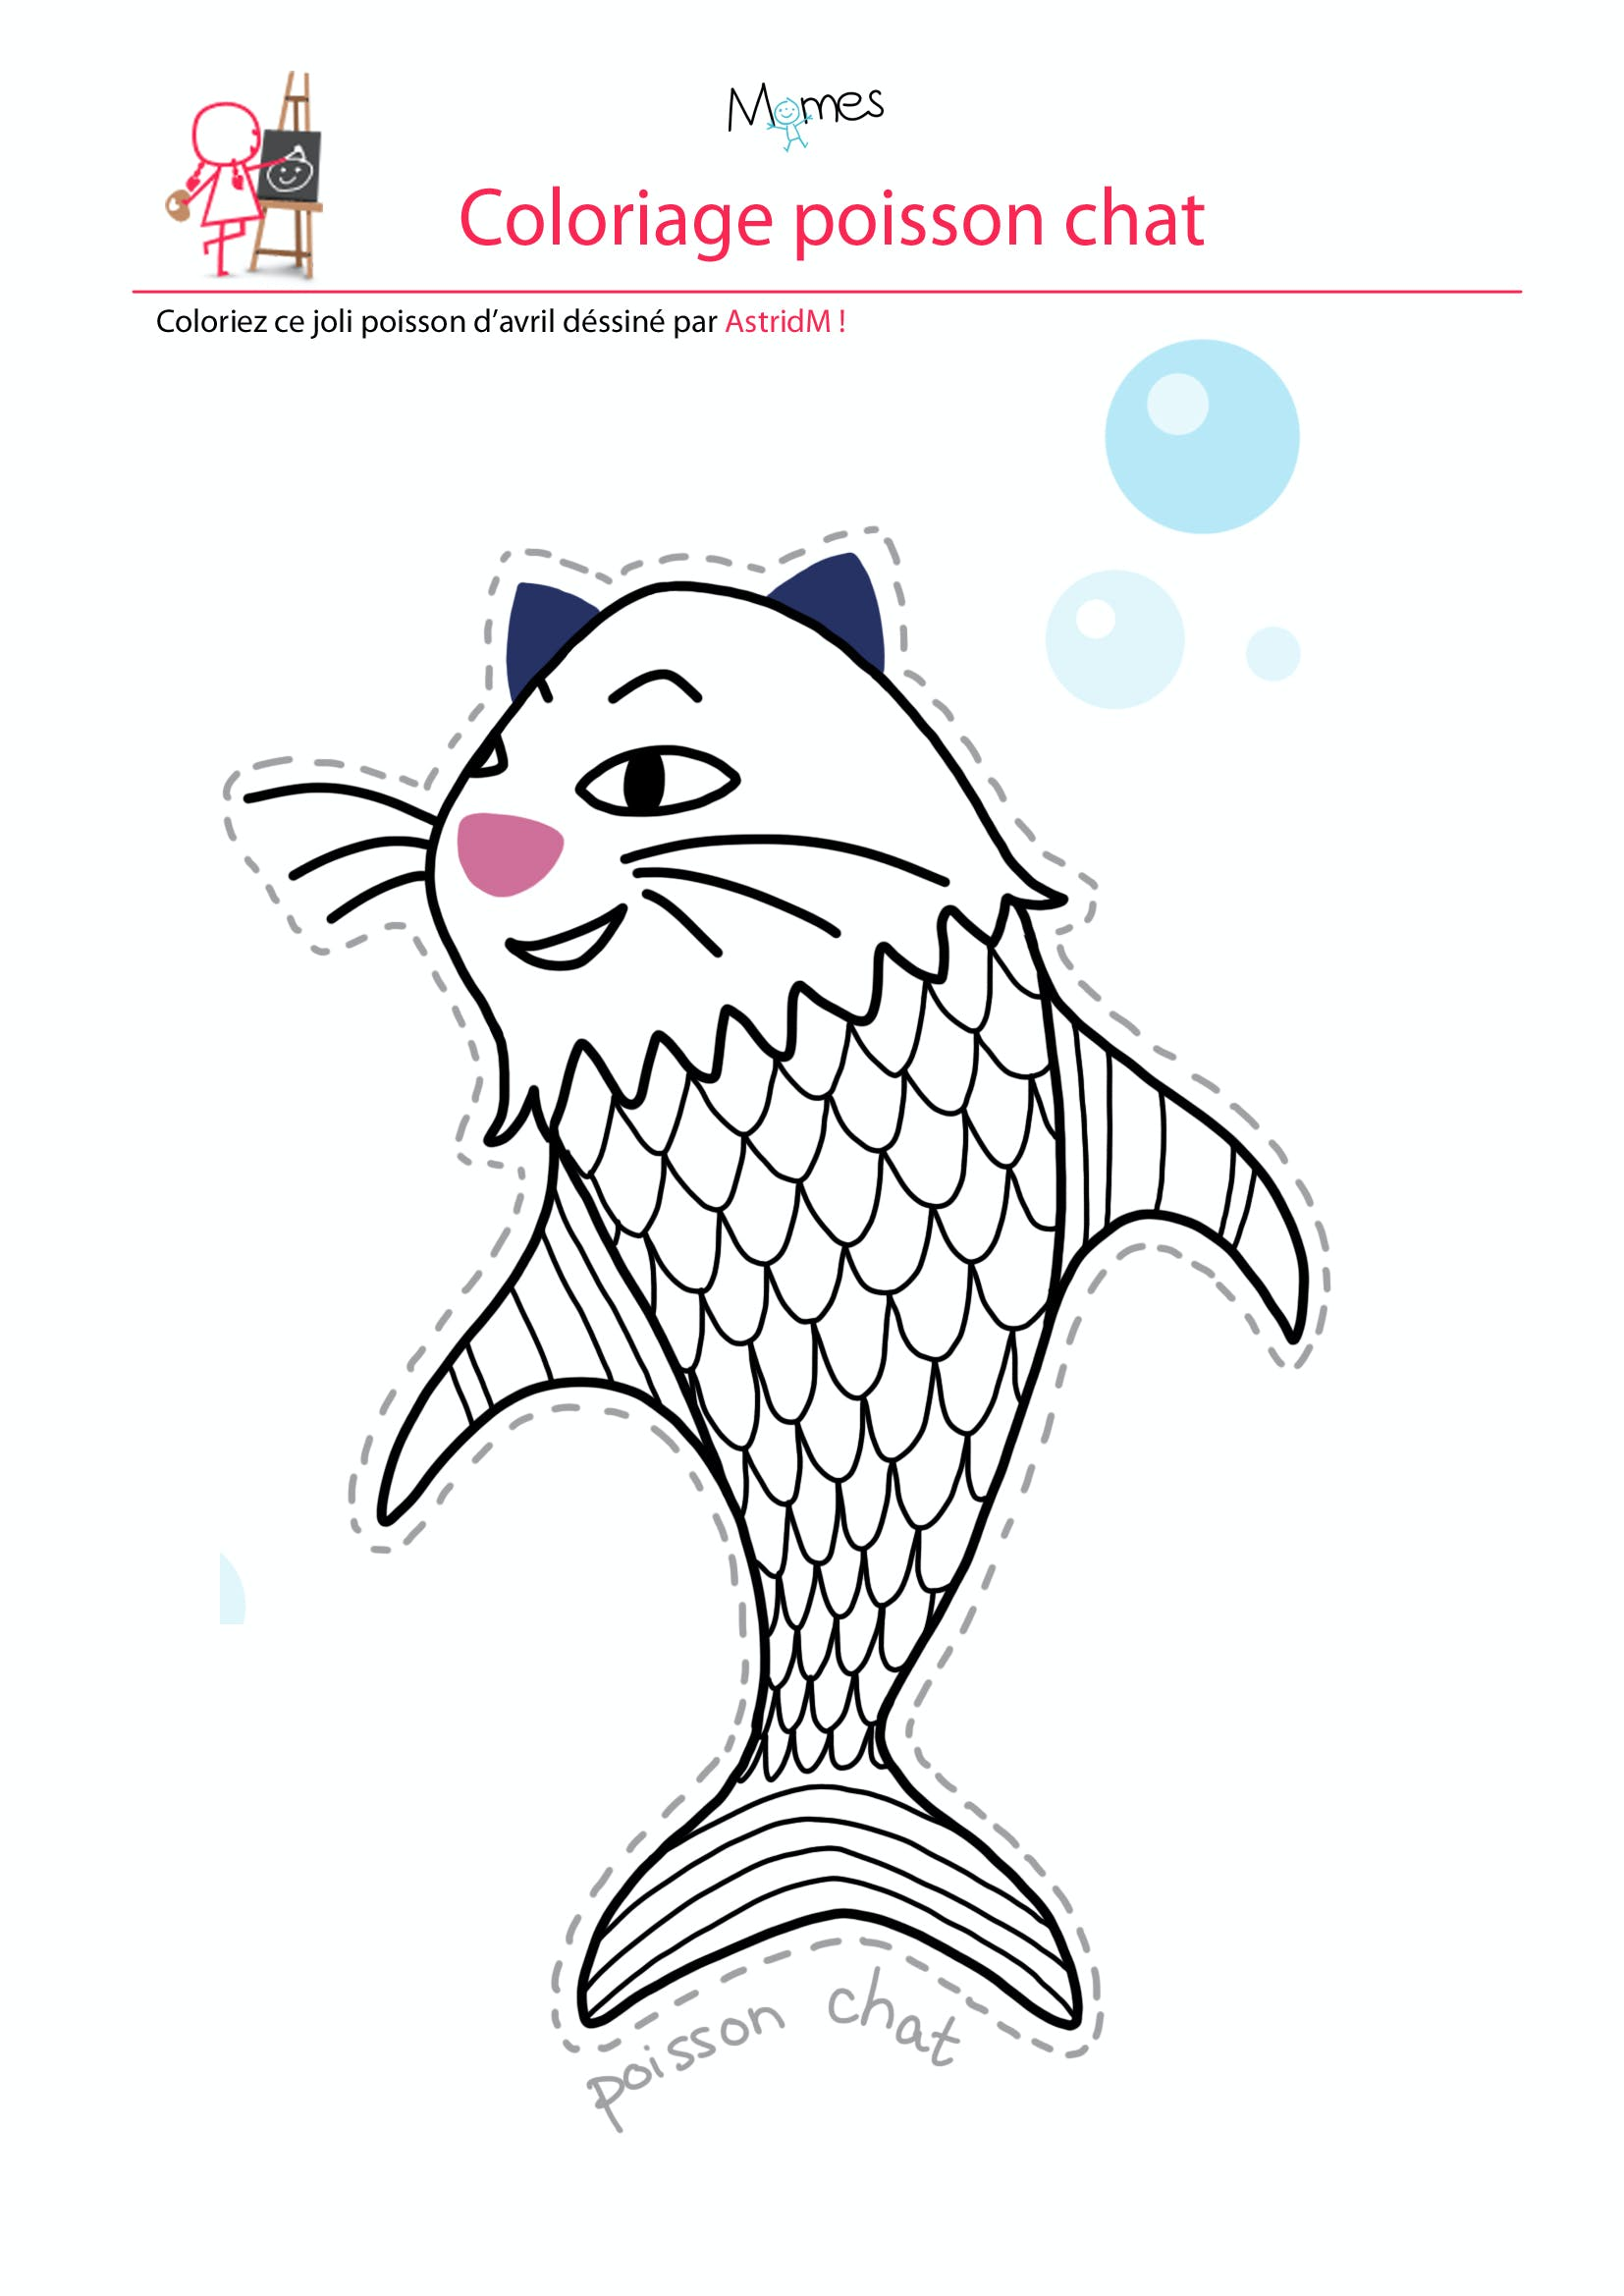 Coloriage poisson d 39 avril le poisson chat - Dessin poisson d avril rigolo ...